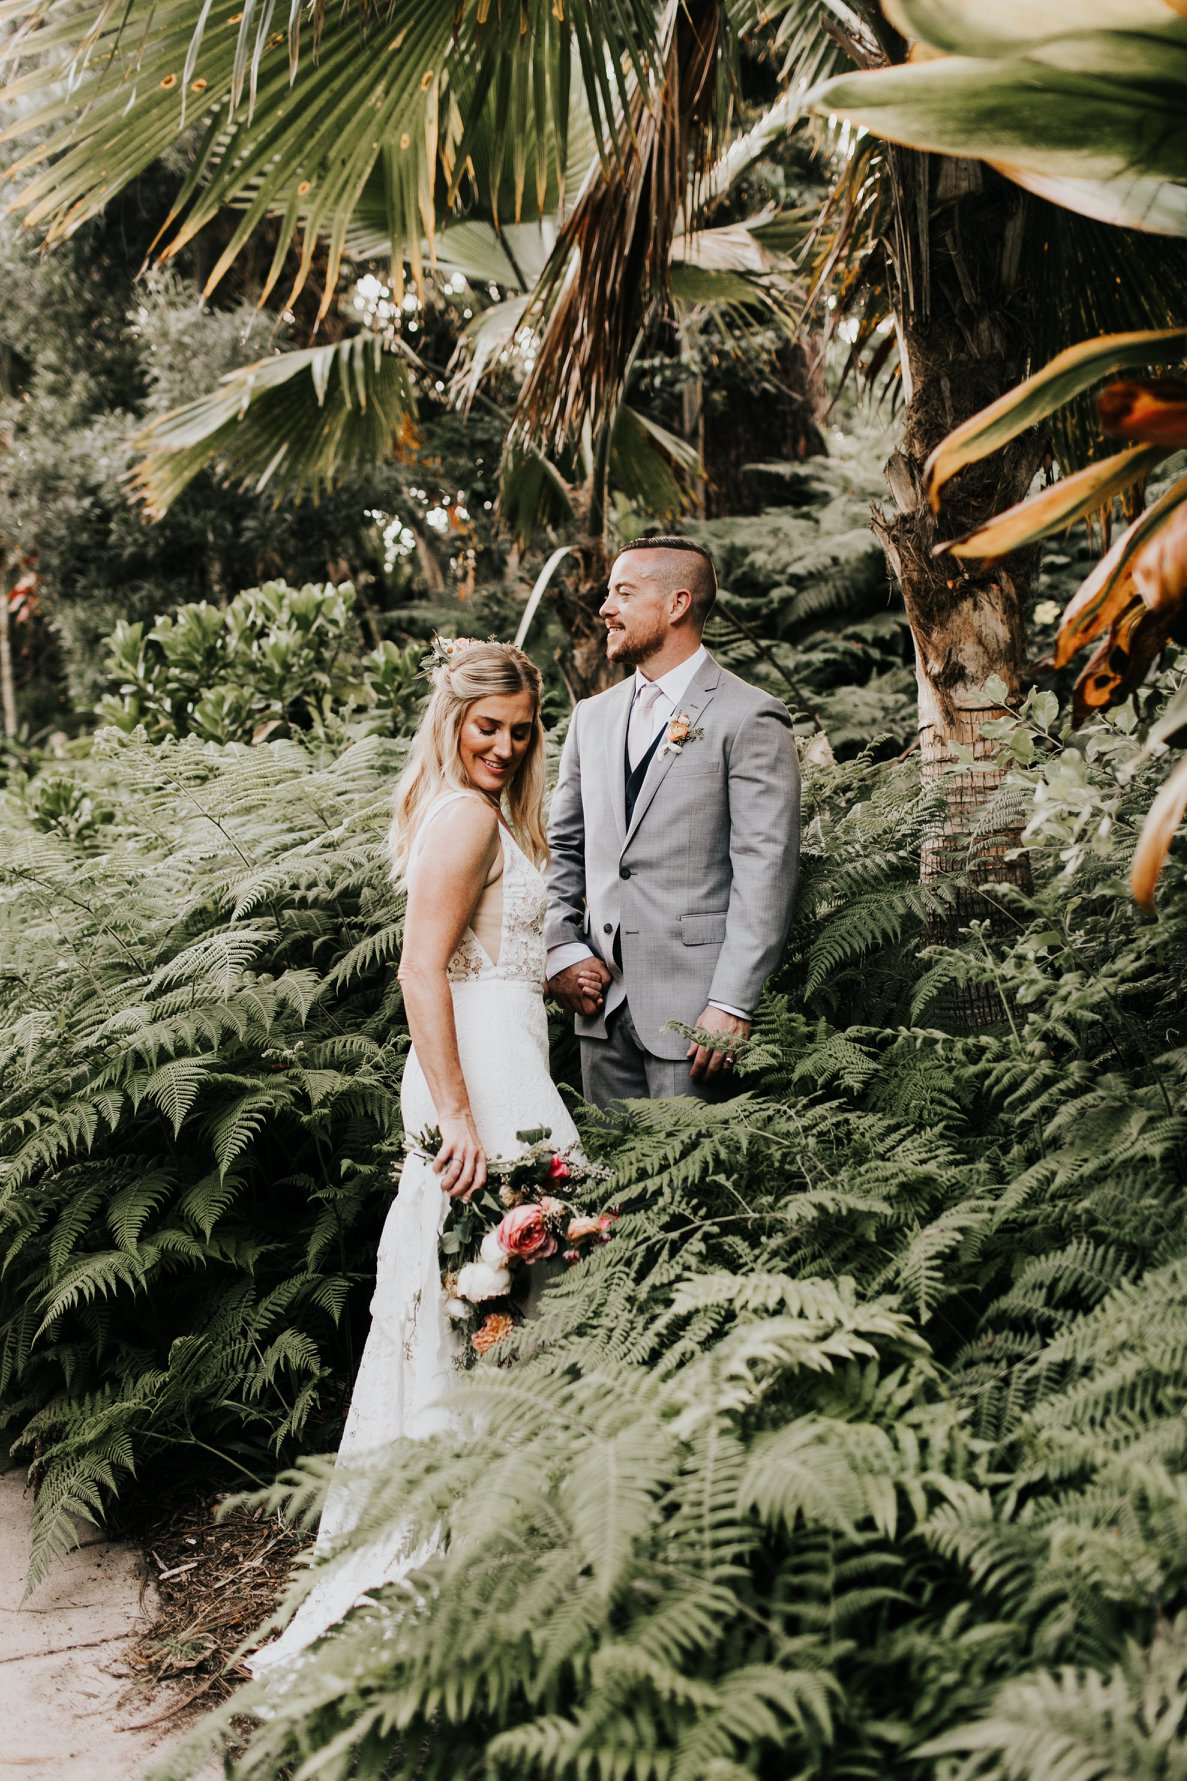 Ian and Betsy were married at the San Diego Botanic Garden on July 20, 2018